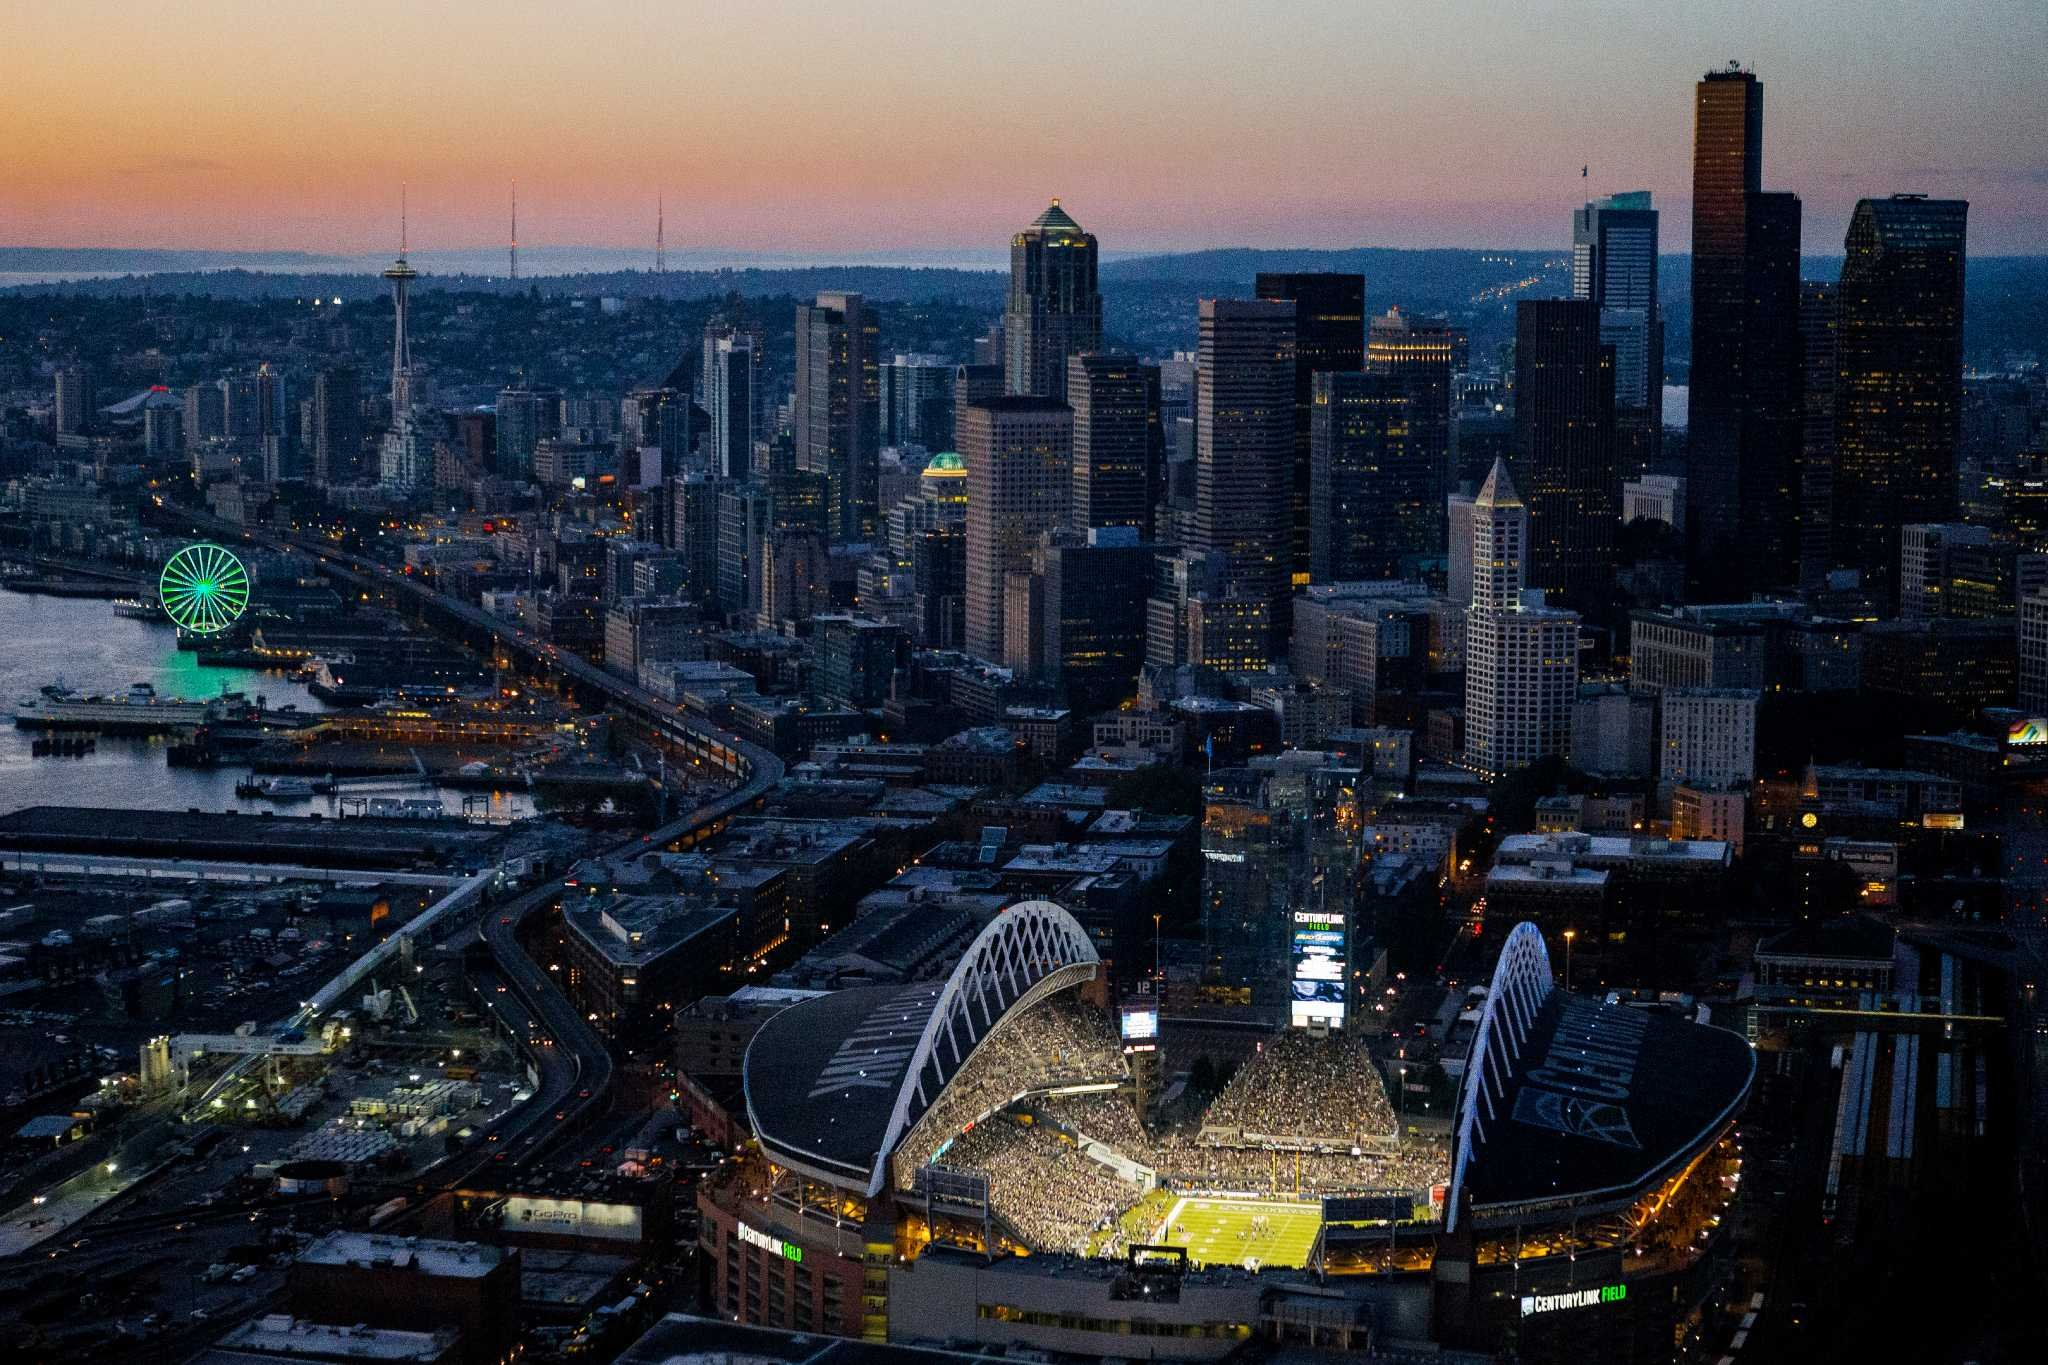 SEATTLE SEAHAWKS nfl football city cities stadium wallpaper background 2048x1365